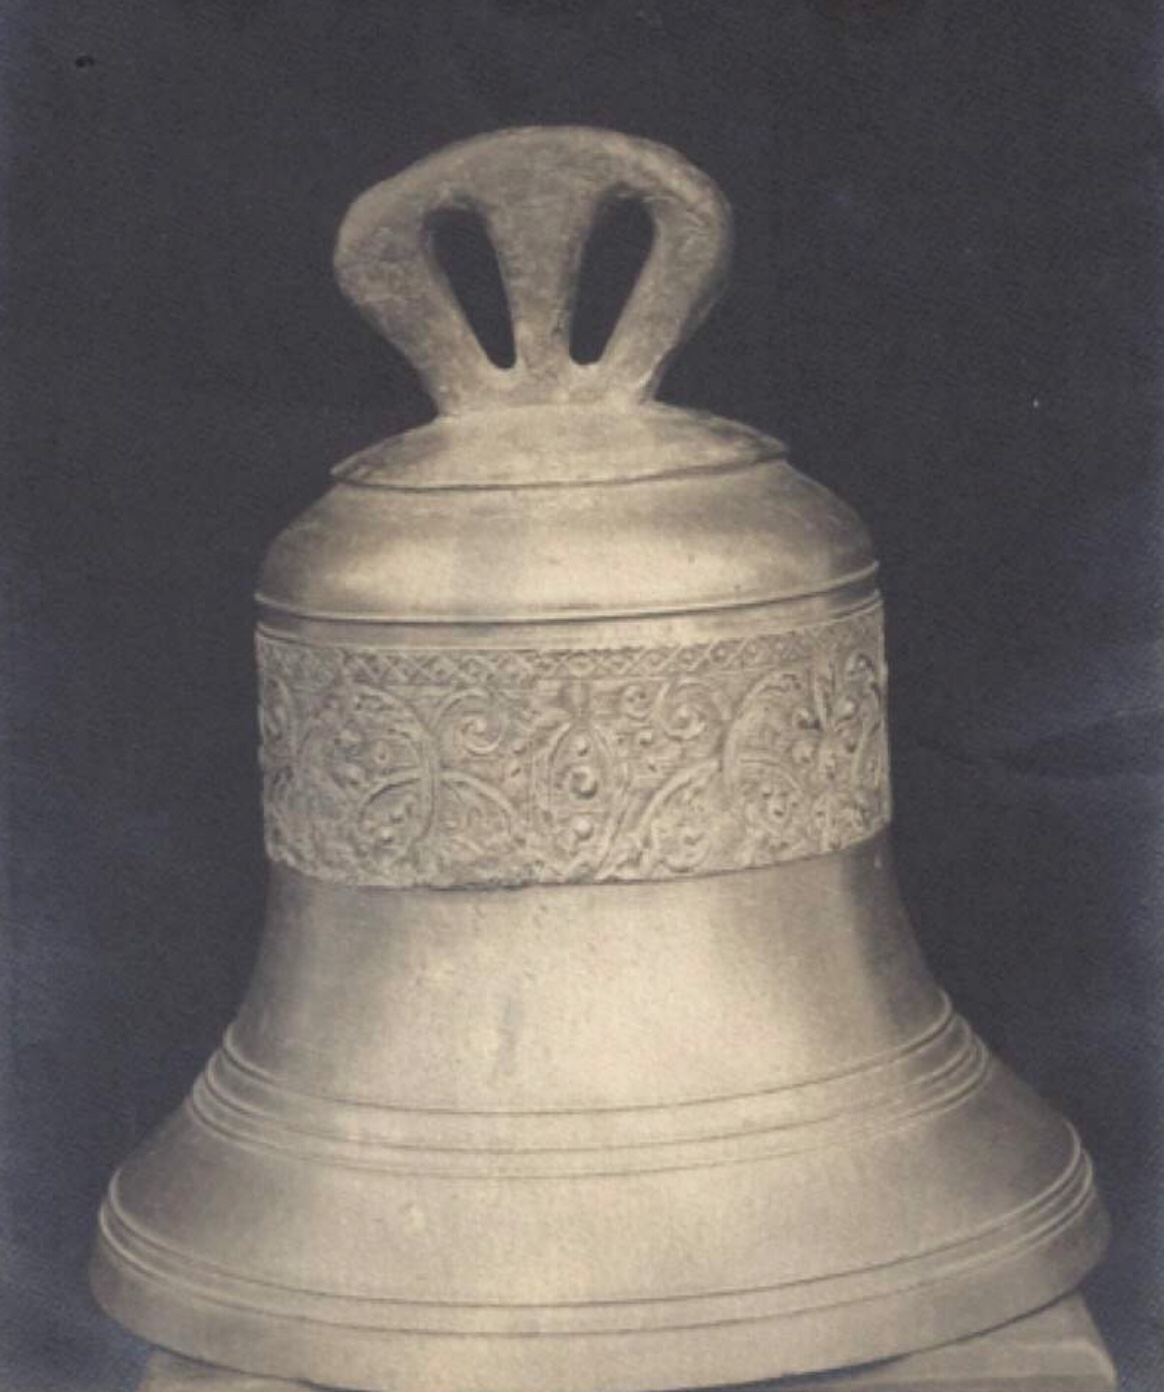 Oldest Bell In Western Hemisphere Taken From Andros Island in 1885